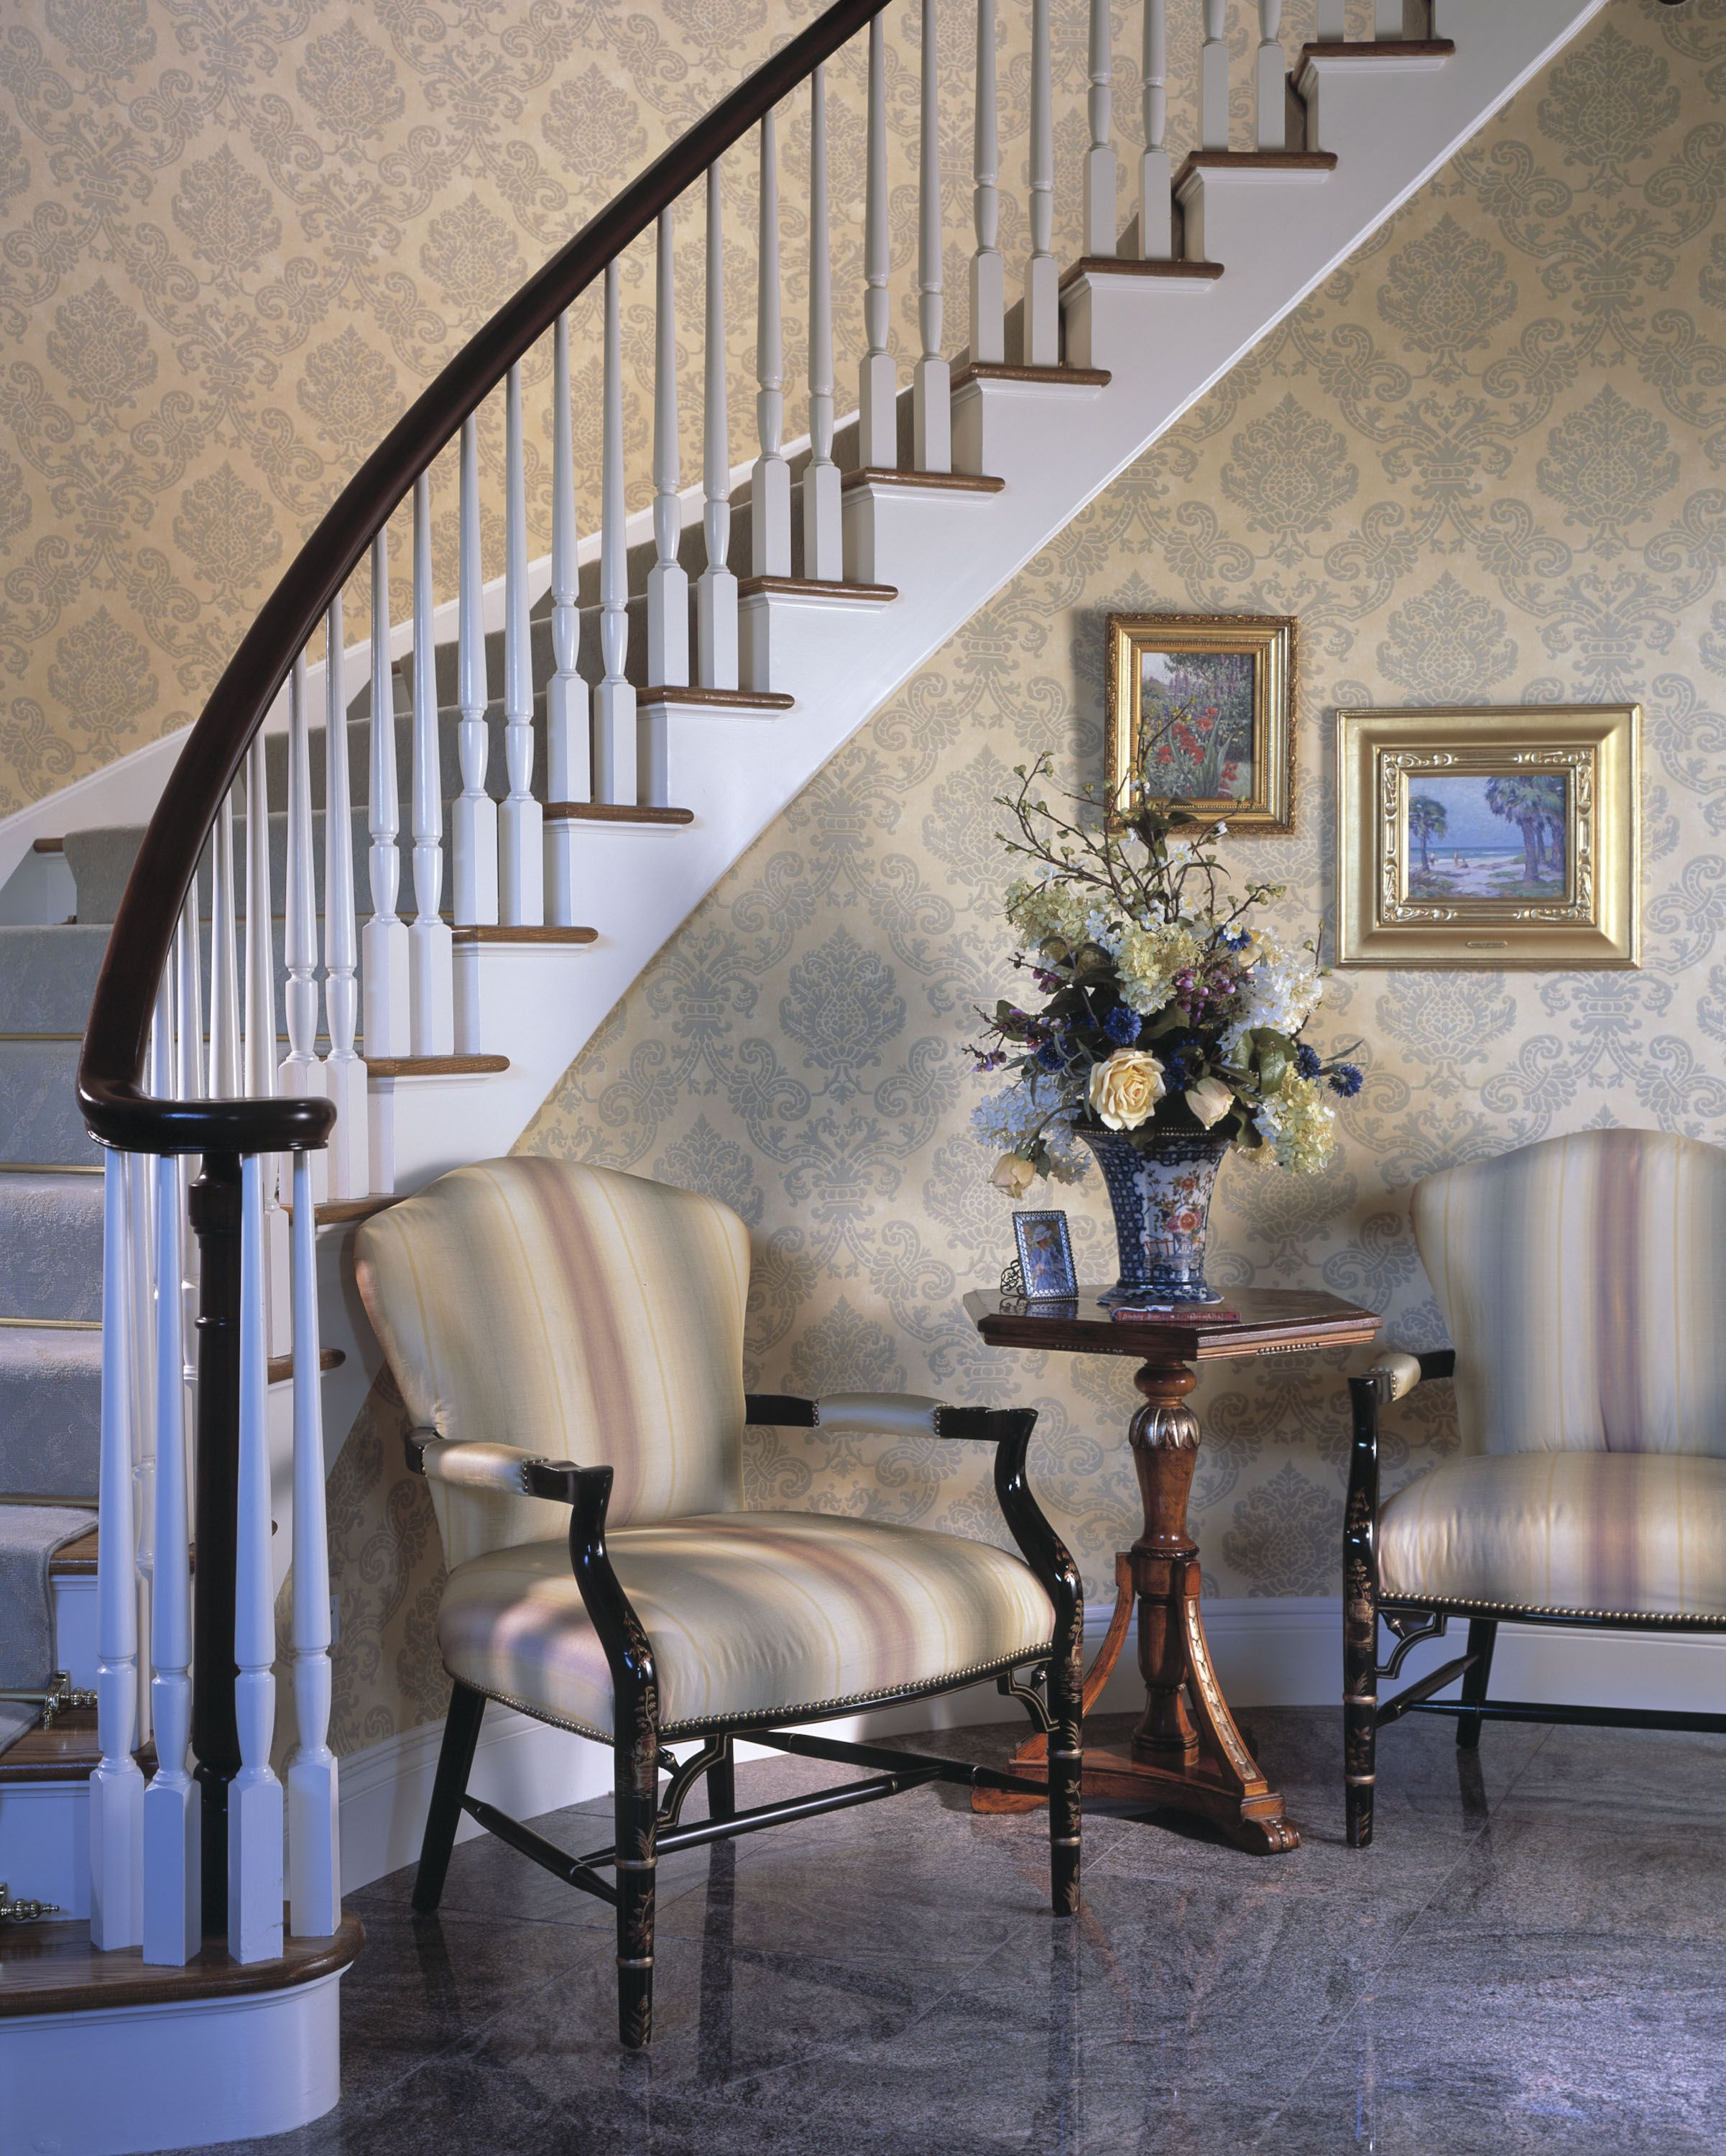 Georgian house style foyer with pale damask print wallpaper.